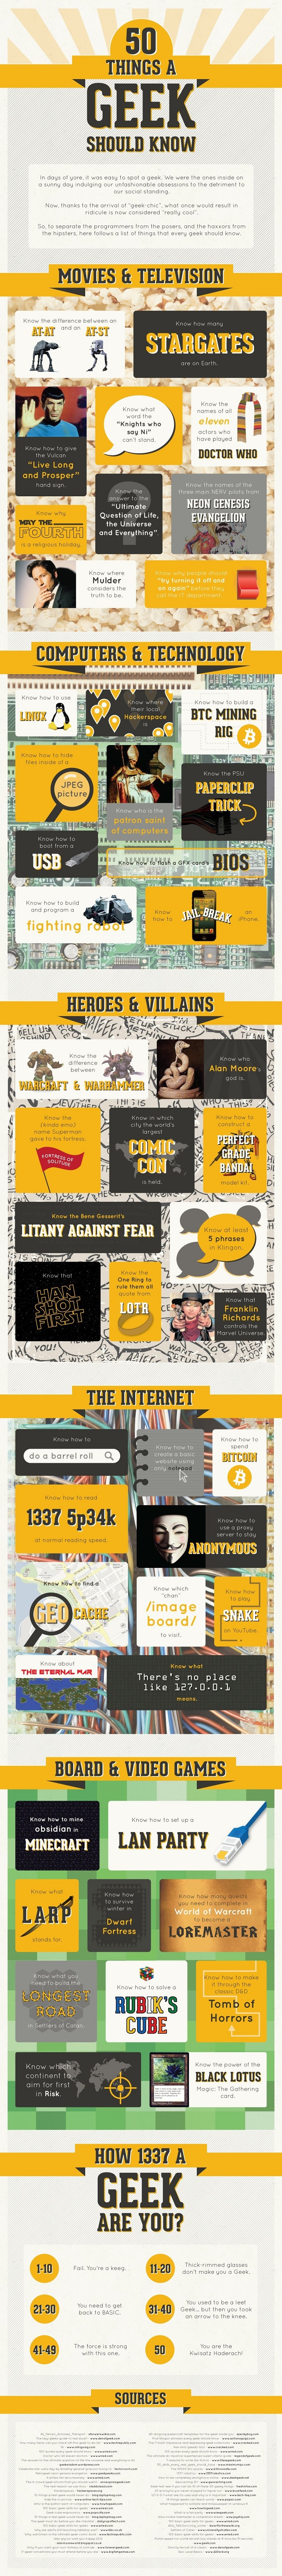 50-things-a-geek-should-know-infographic_5203bf8c5d075